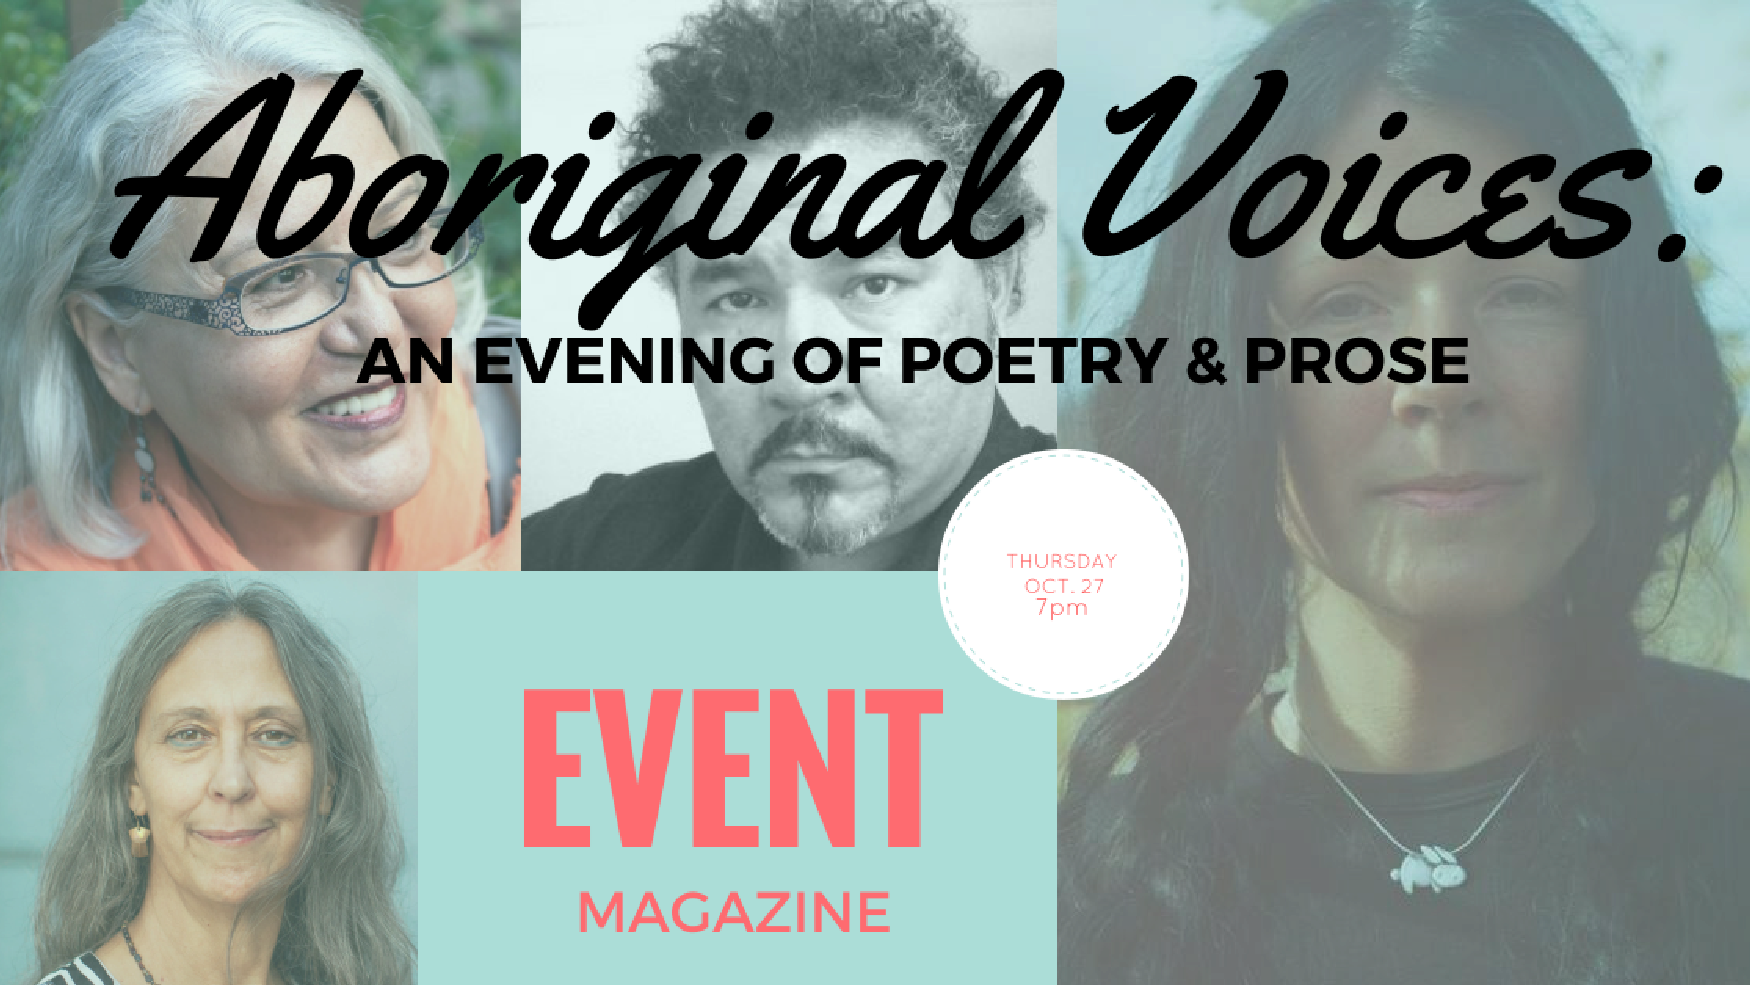 Hear Aboriginal Voices Tonight with EVENT